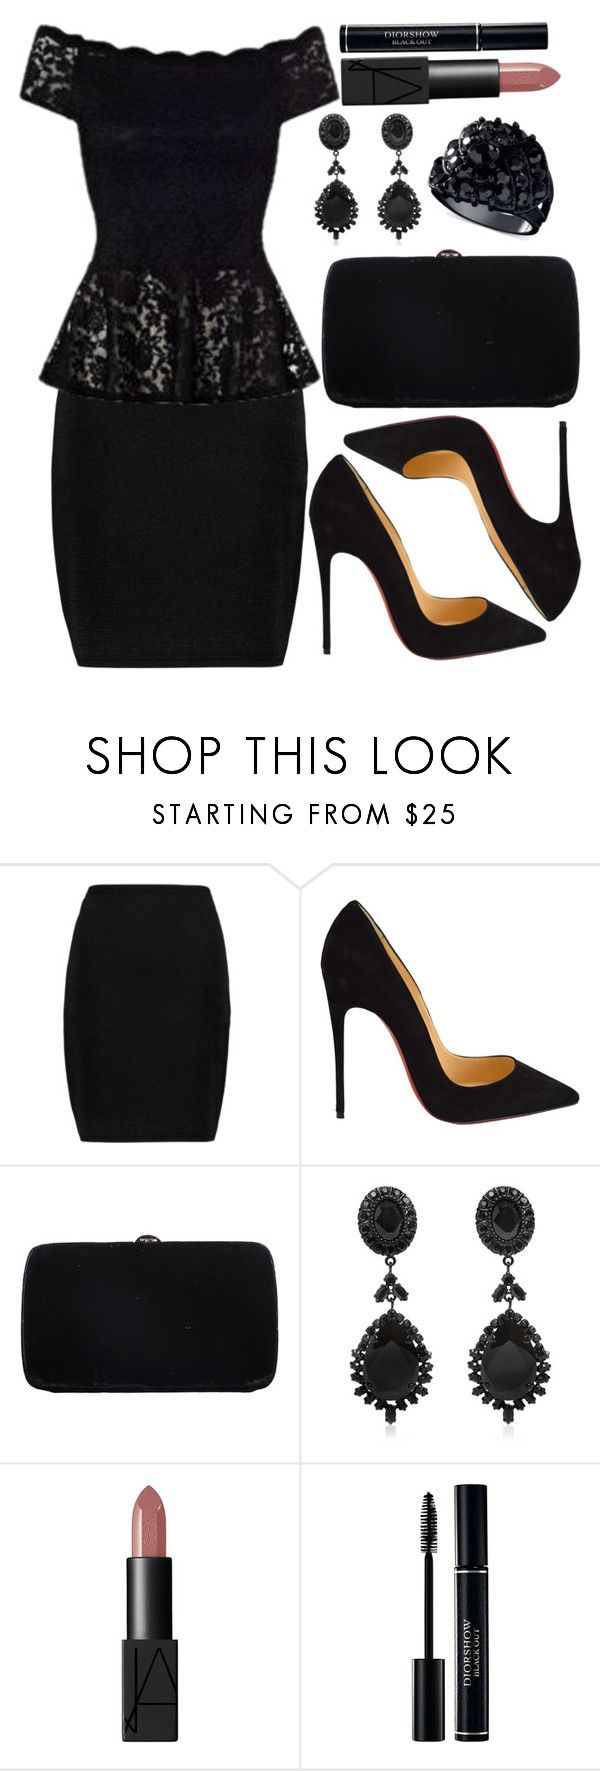 """Untitled #3567"" by natalyasidunova ❤ liked on Polyvore featuring Alexander Wang, Christian Louboutin, Sergio Rossi, Givenchy, NARS Cosmetics, GUESS, women's clothing, women, female and woman"